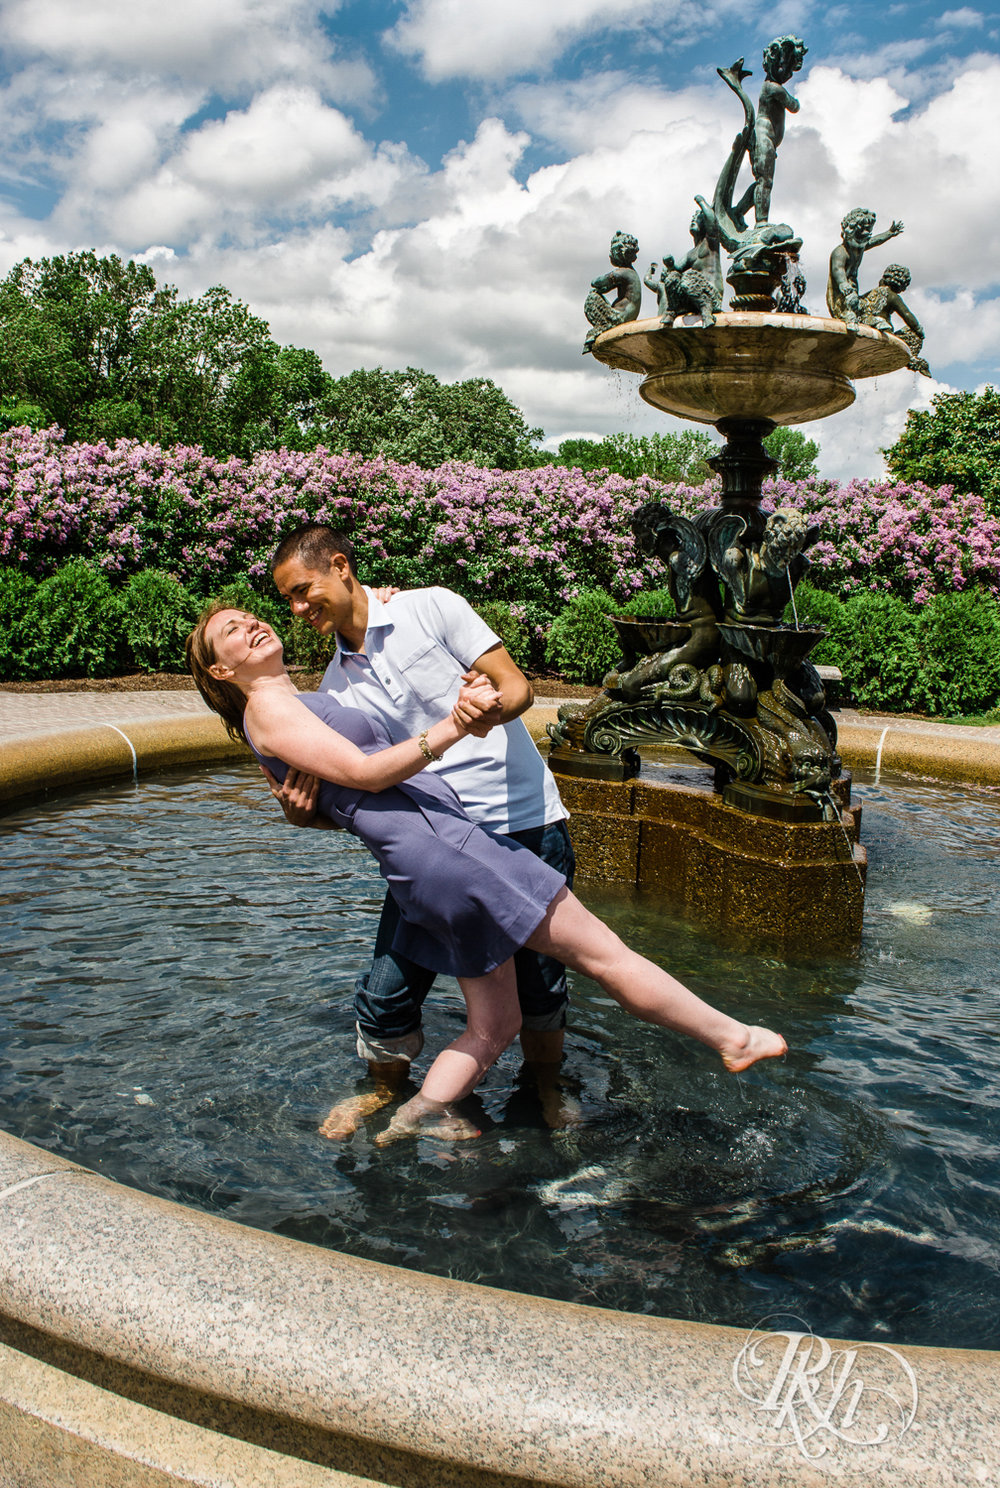 Tess and Eric - Lyndale Rose Garden - Minnesota Engagement Photography - RKH Images  (12 of 12).jpg